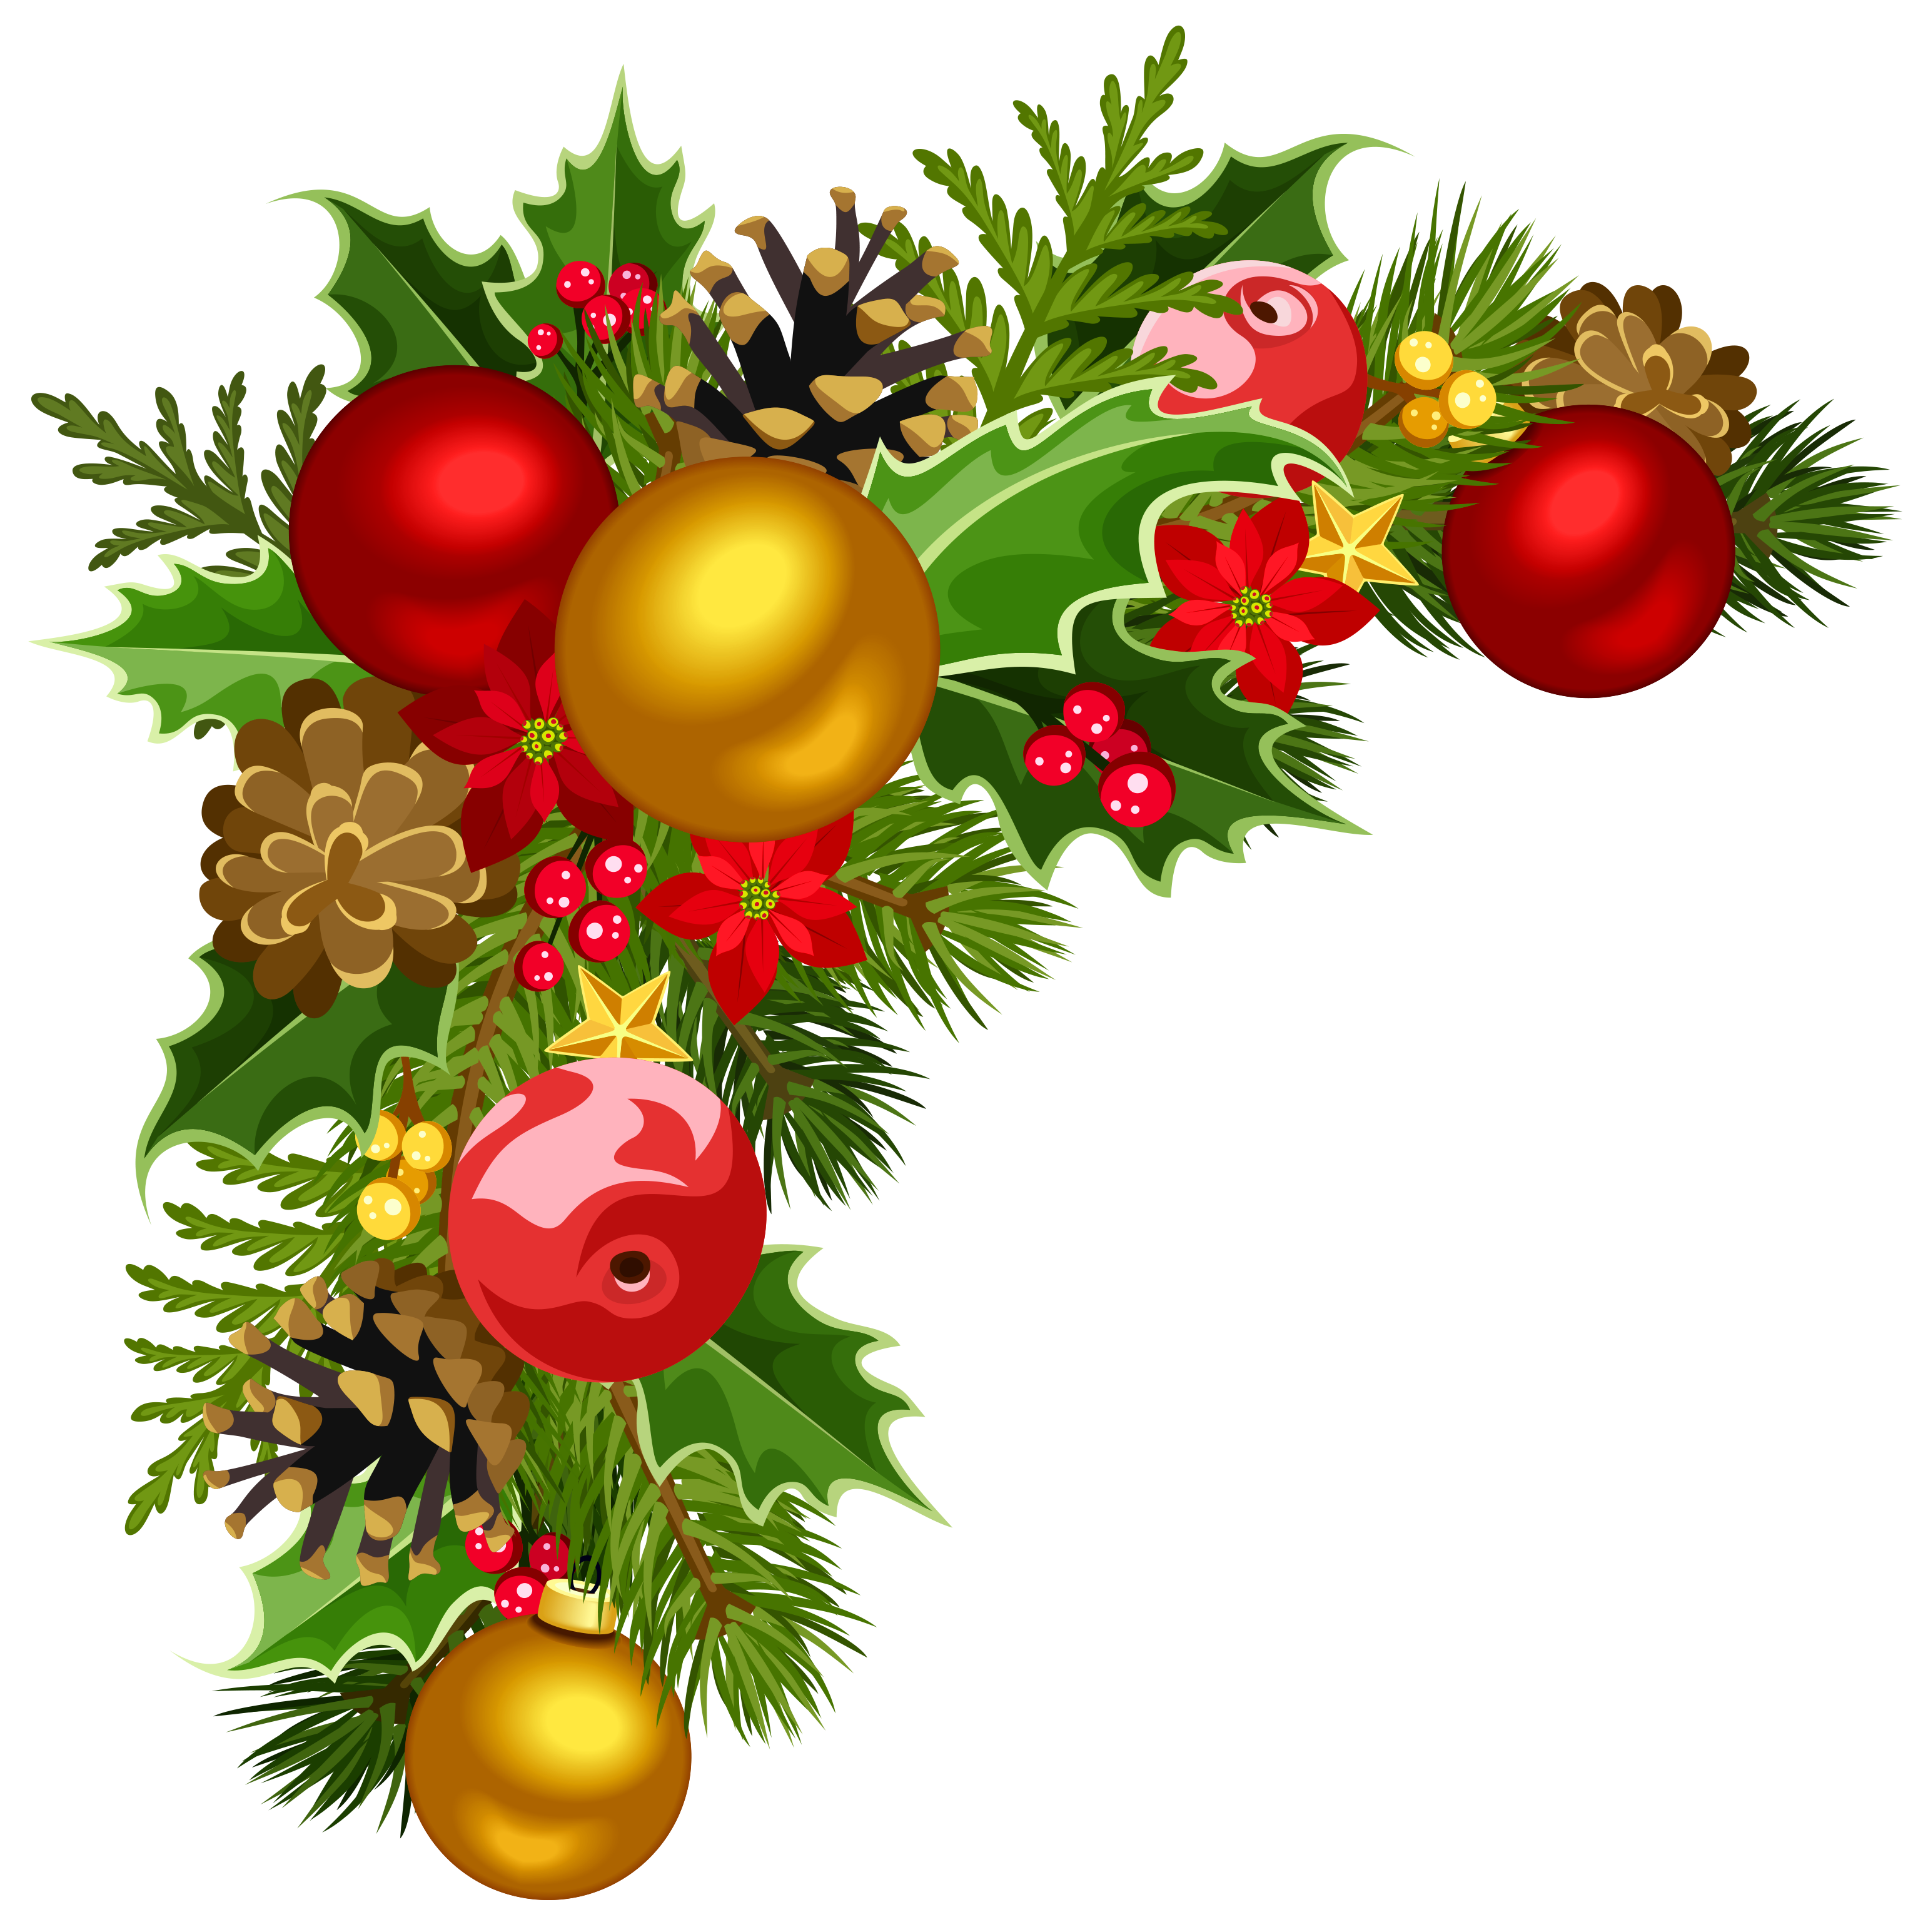 Christmas clipart corner. Deco with tree decorations